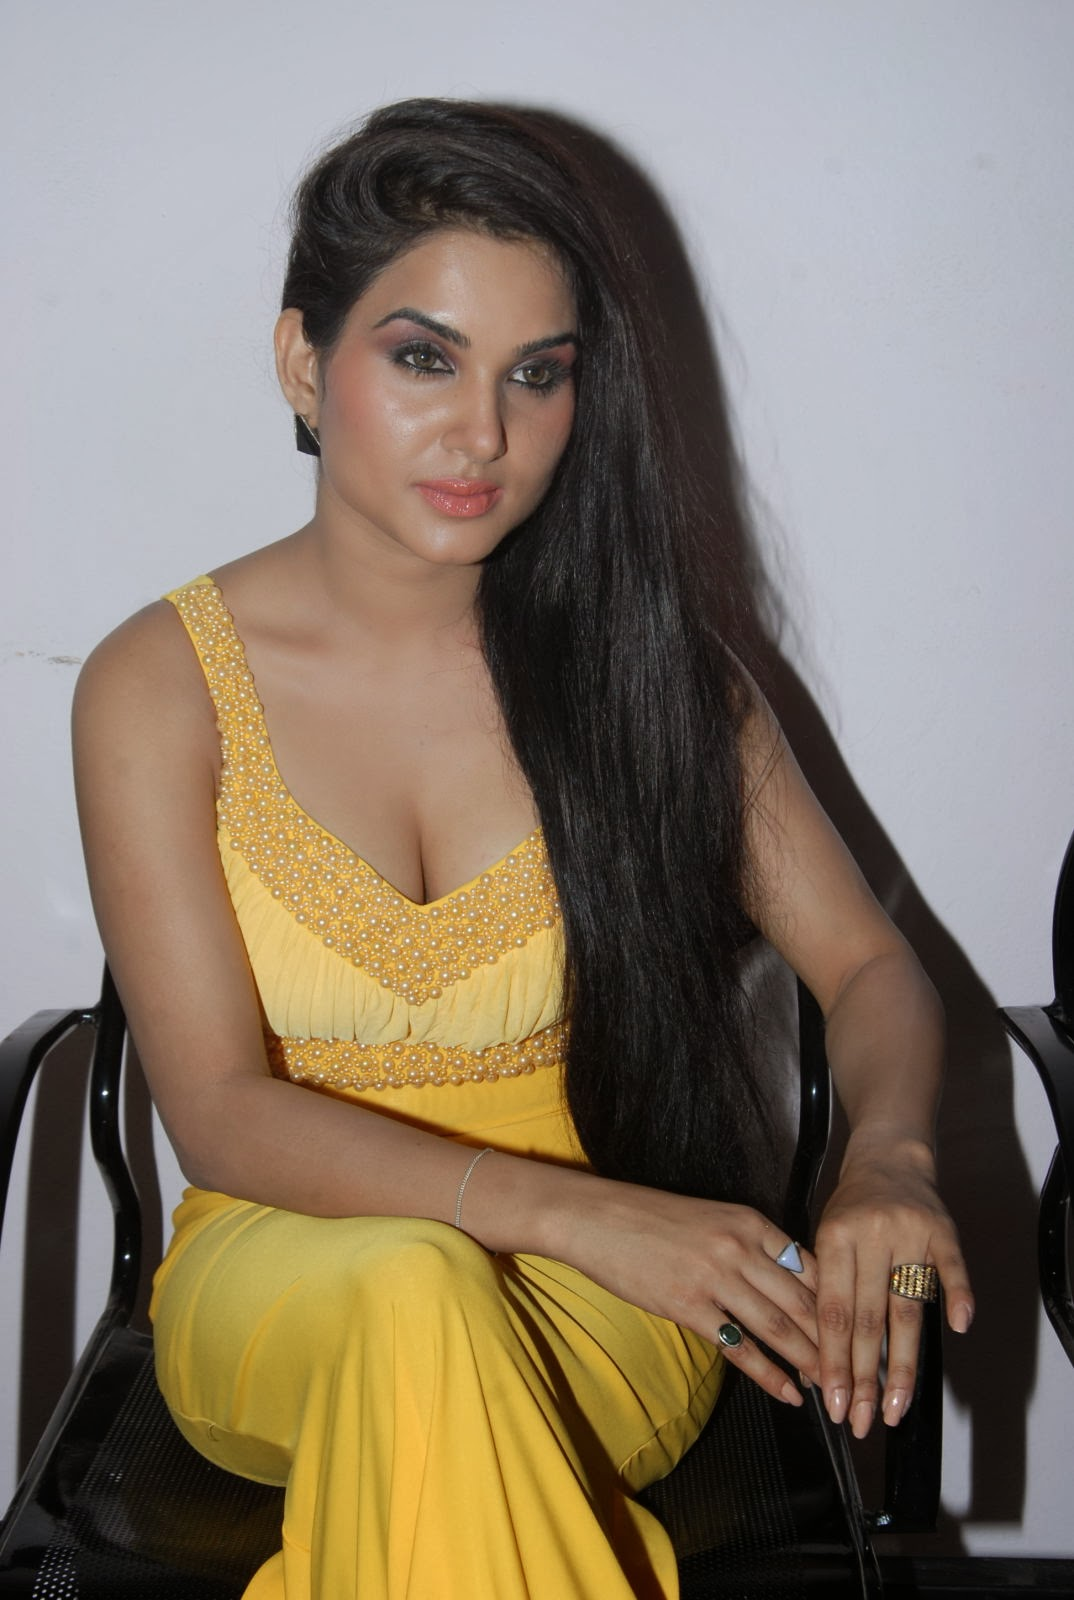 Kavya Singh hot pics, Kavya Singh sexy photos, Kavya Singh HD wallpaper, Kavya Singh in yellow dress, Sorry Teacher movie actress hot pics